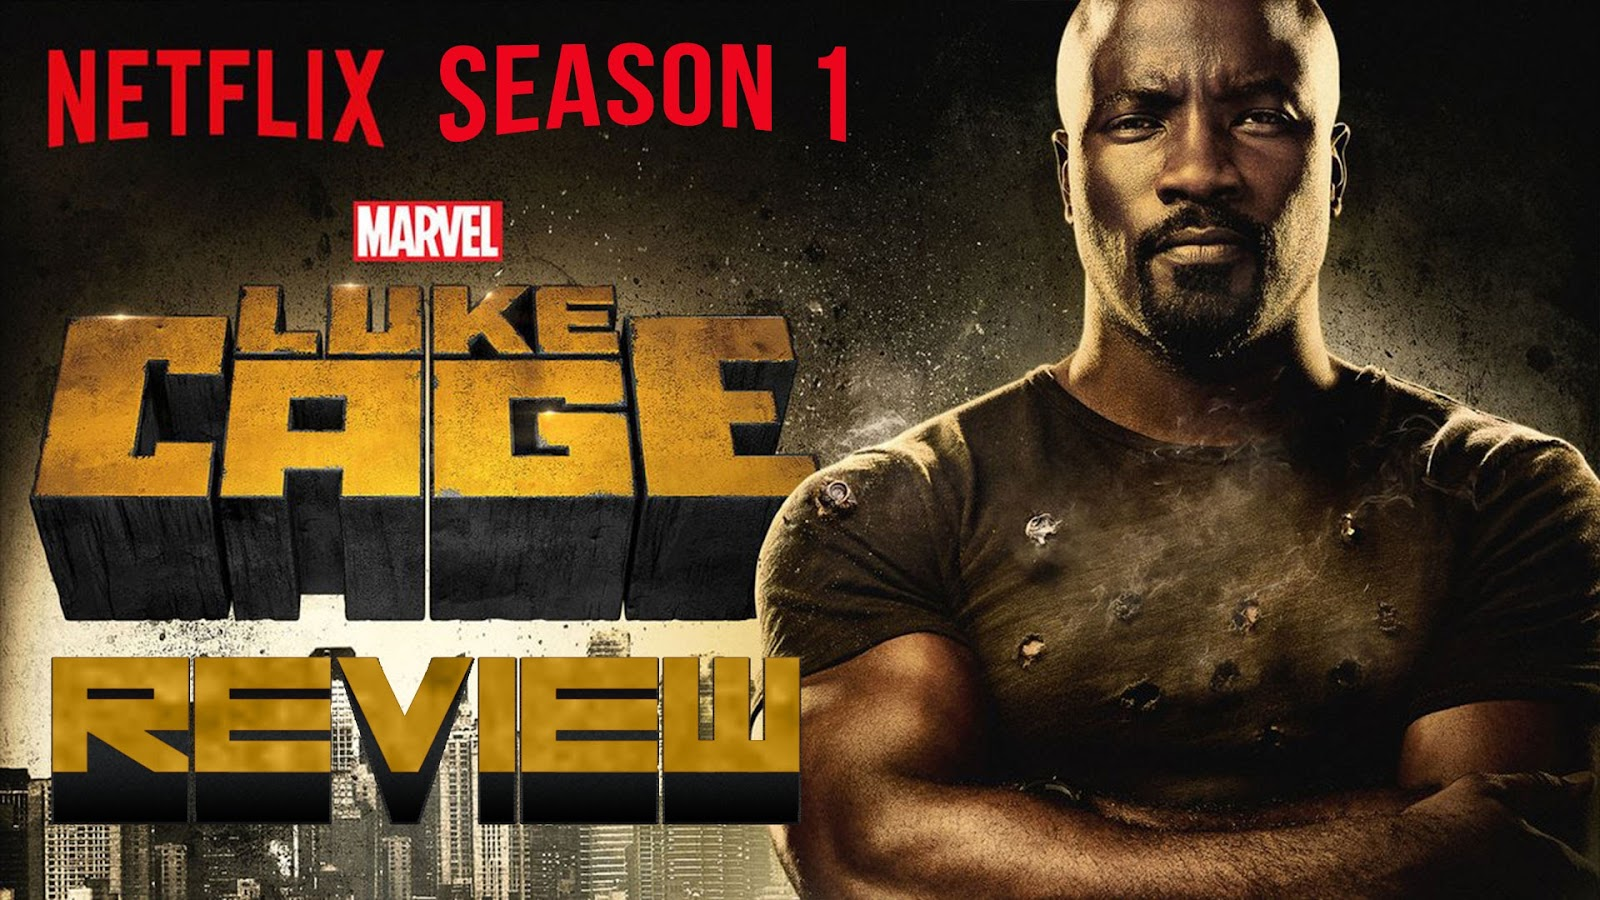 Beautiful Wallpaper Marvel Luke Cage - Marvel-Luke-Cage-Season-1-Review  Trends_29049.jpg